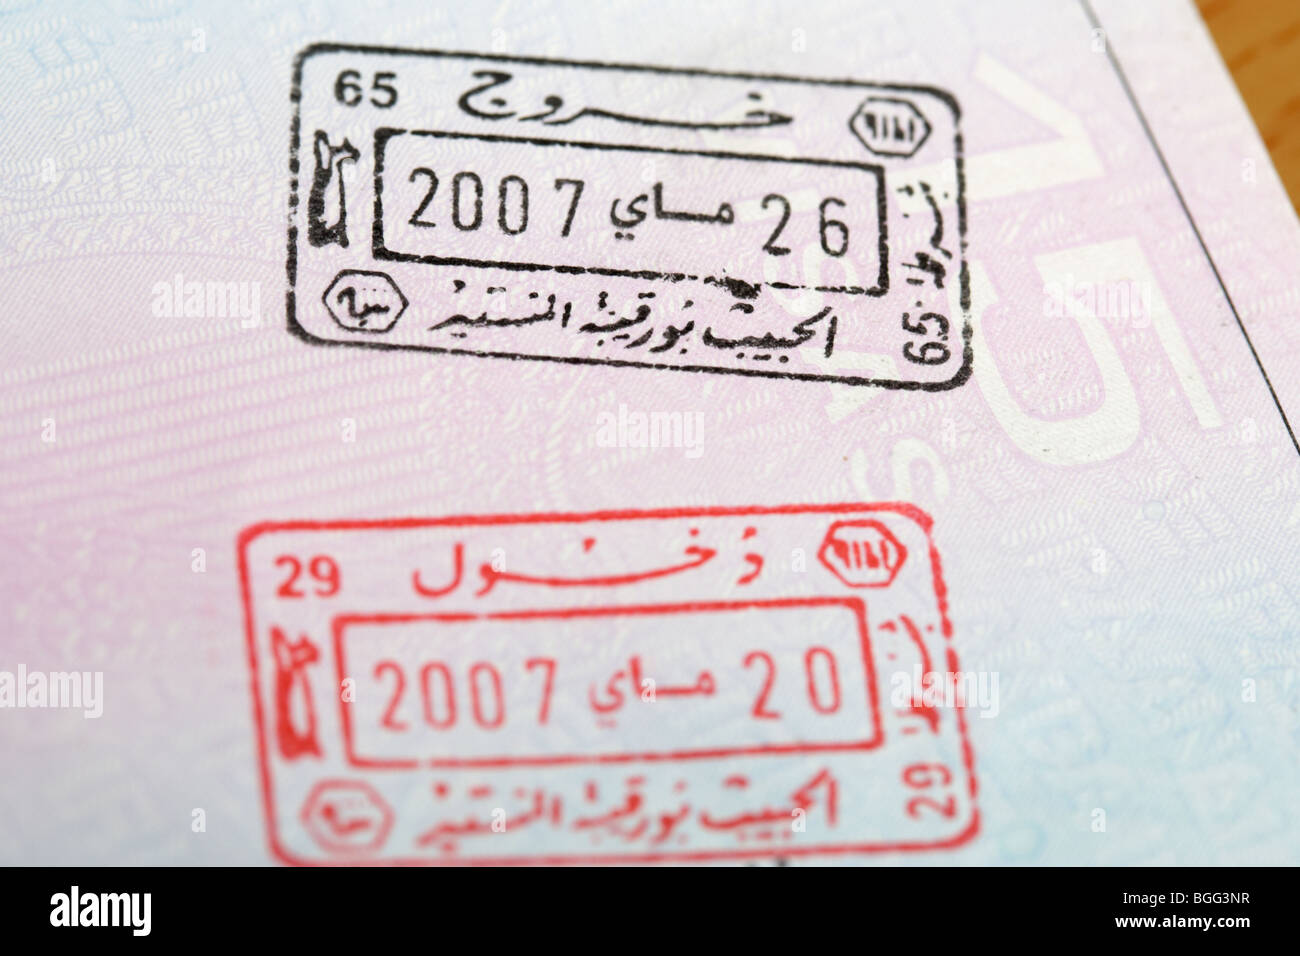 eu irish passport stamped with entry and exit visas with arabic writing for republic of tunisia - Stock Image